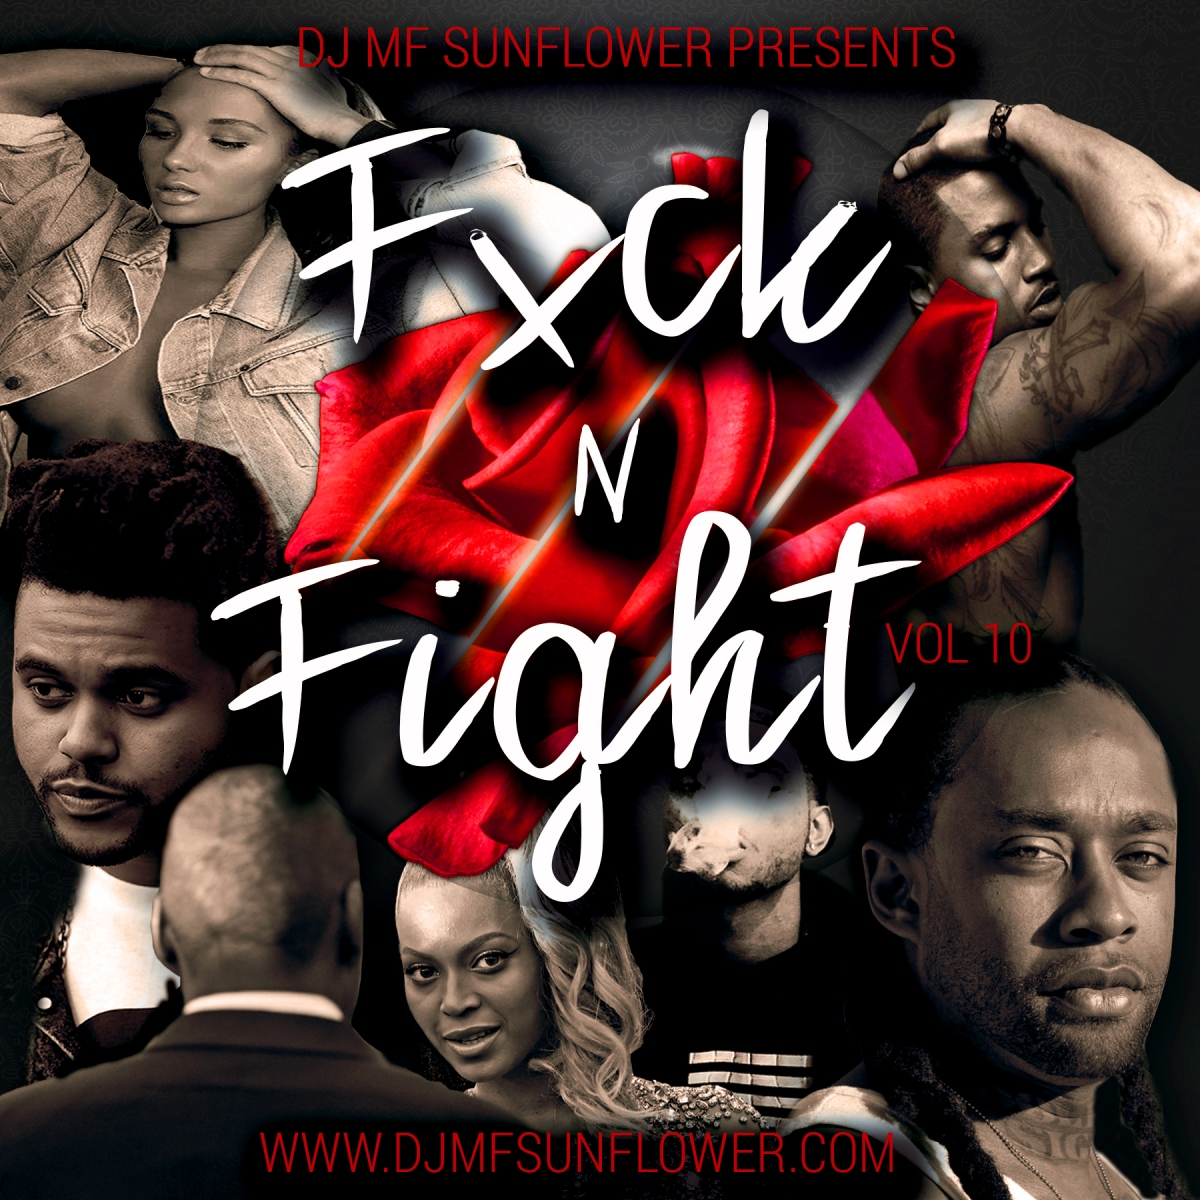 FXCK N FIGHT VOL 10